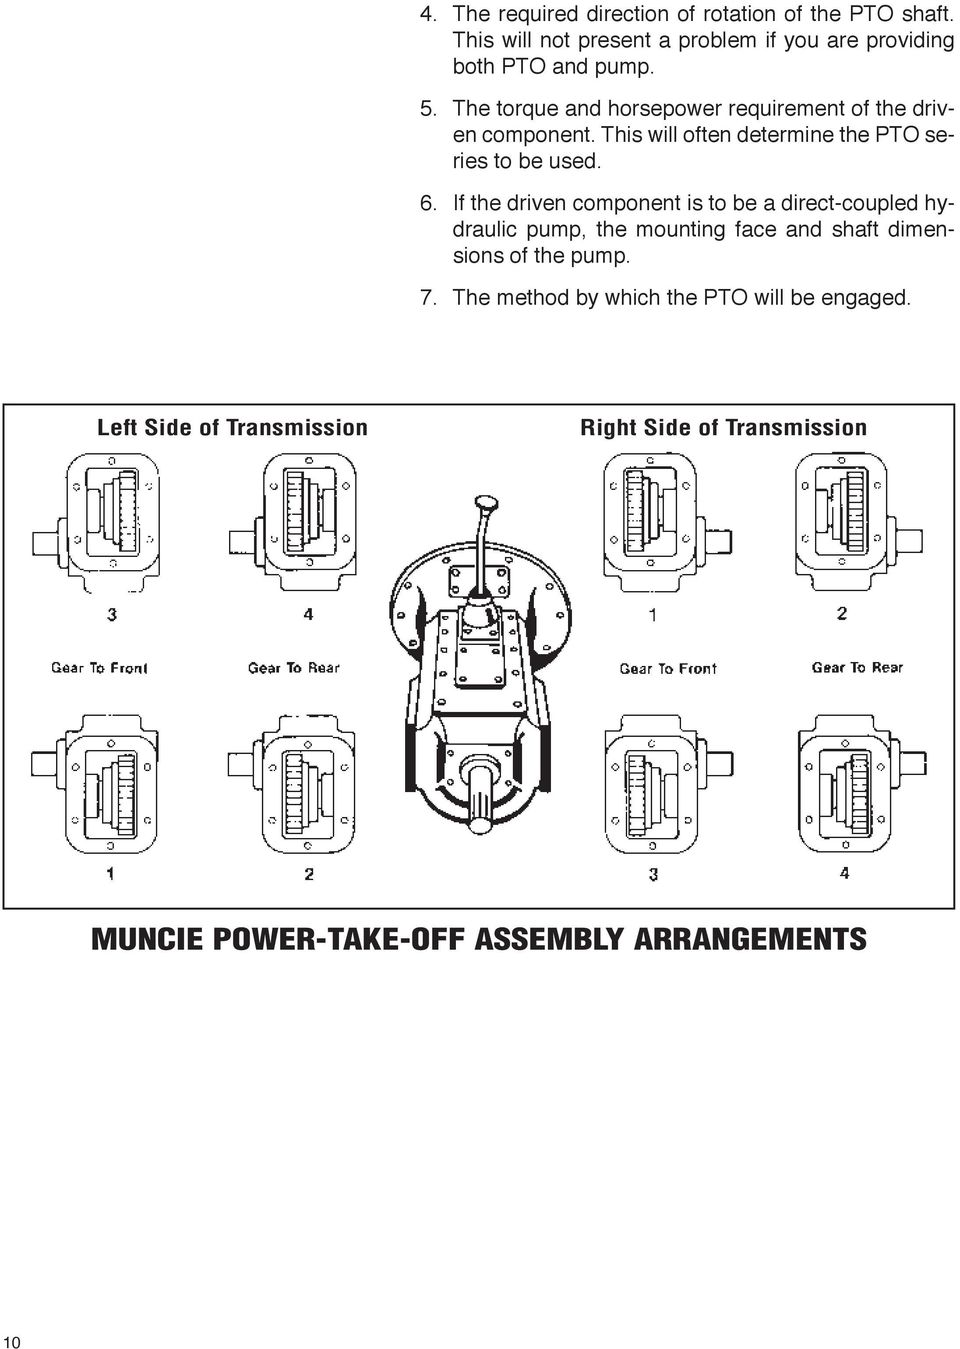 power take-off systems Muncie Power Products - PDF